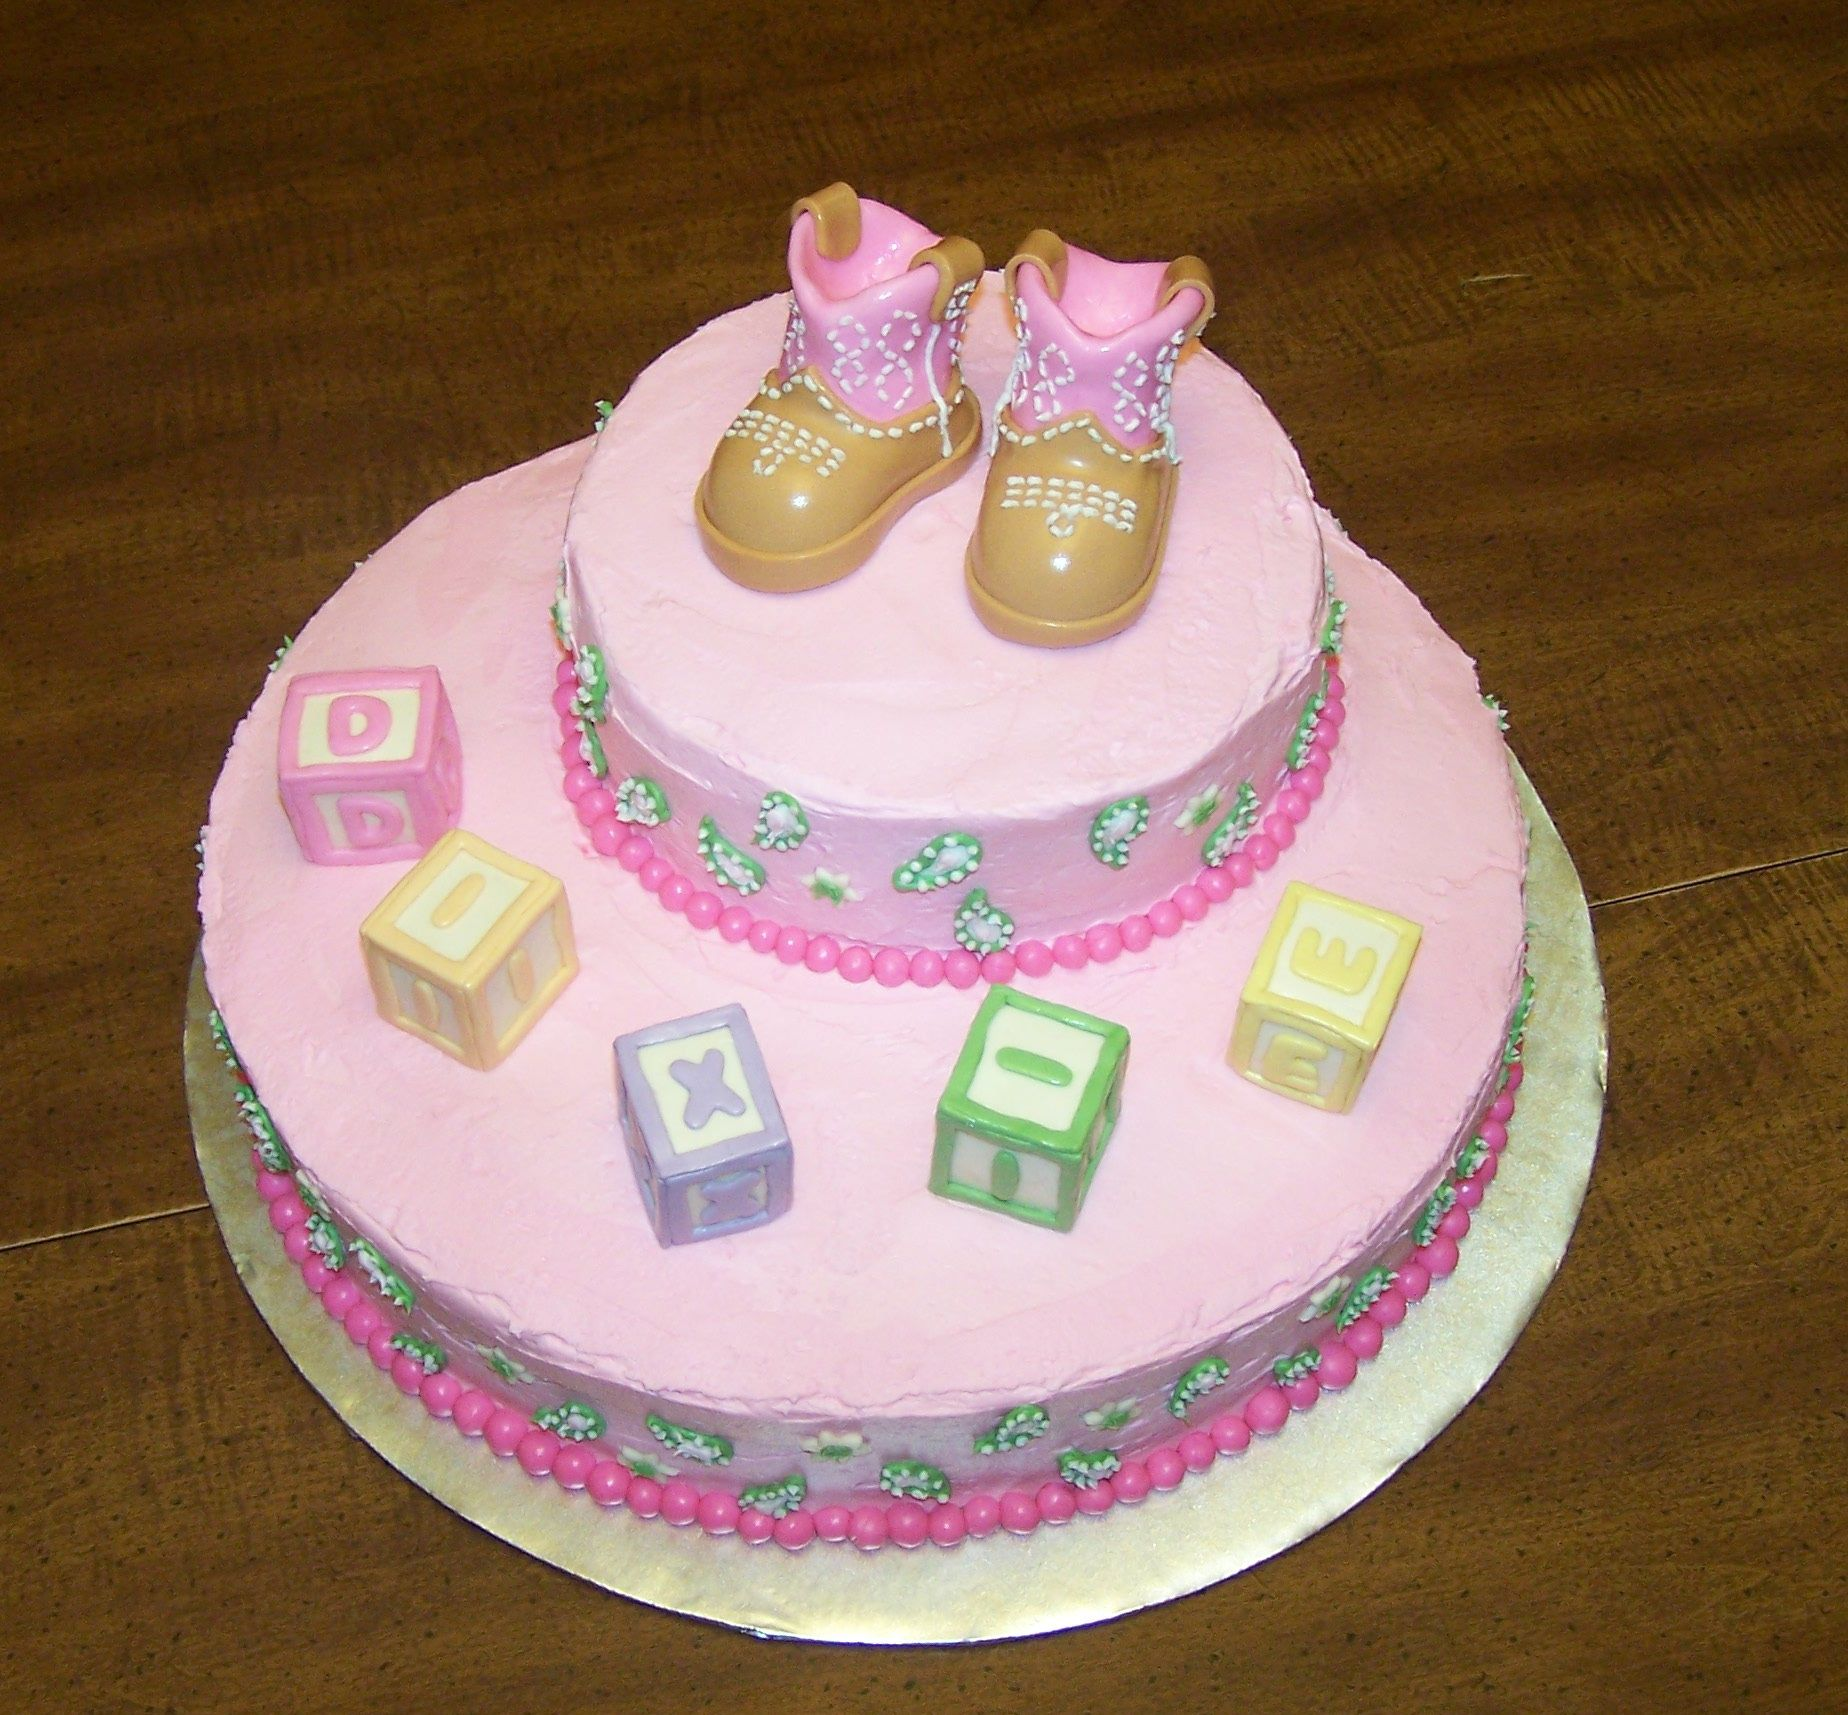 Cowgirl Baby Shower Cakes: Baby Shower Cake With Mm Fondant Abc Blocks Spelling Baby